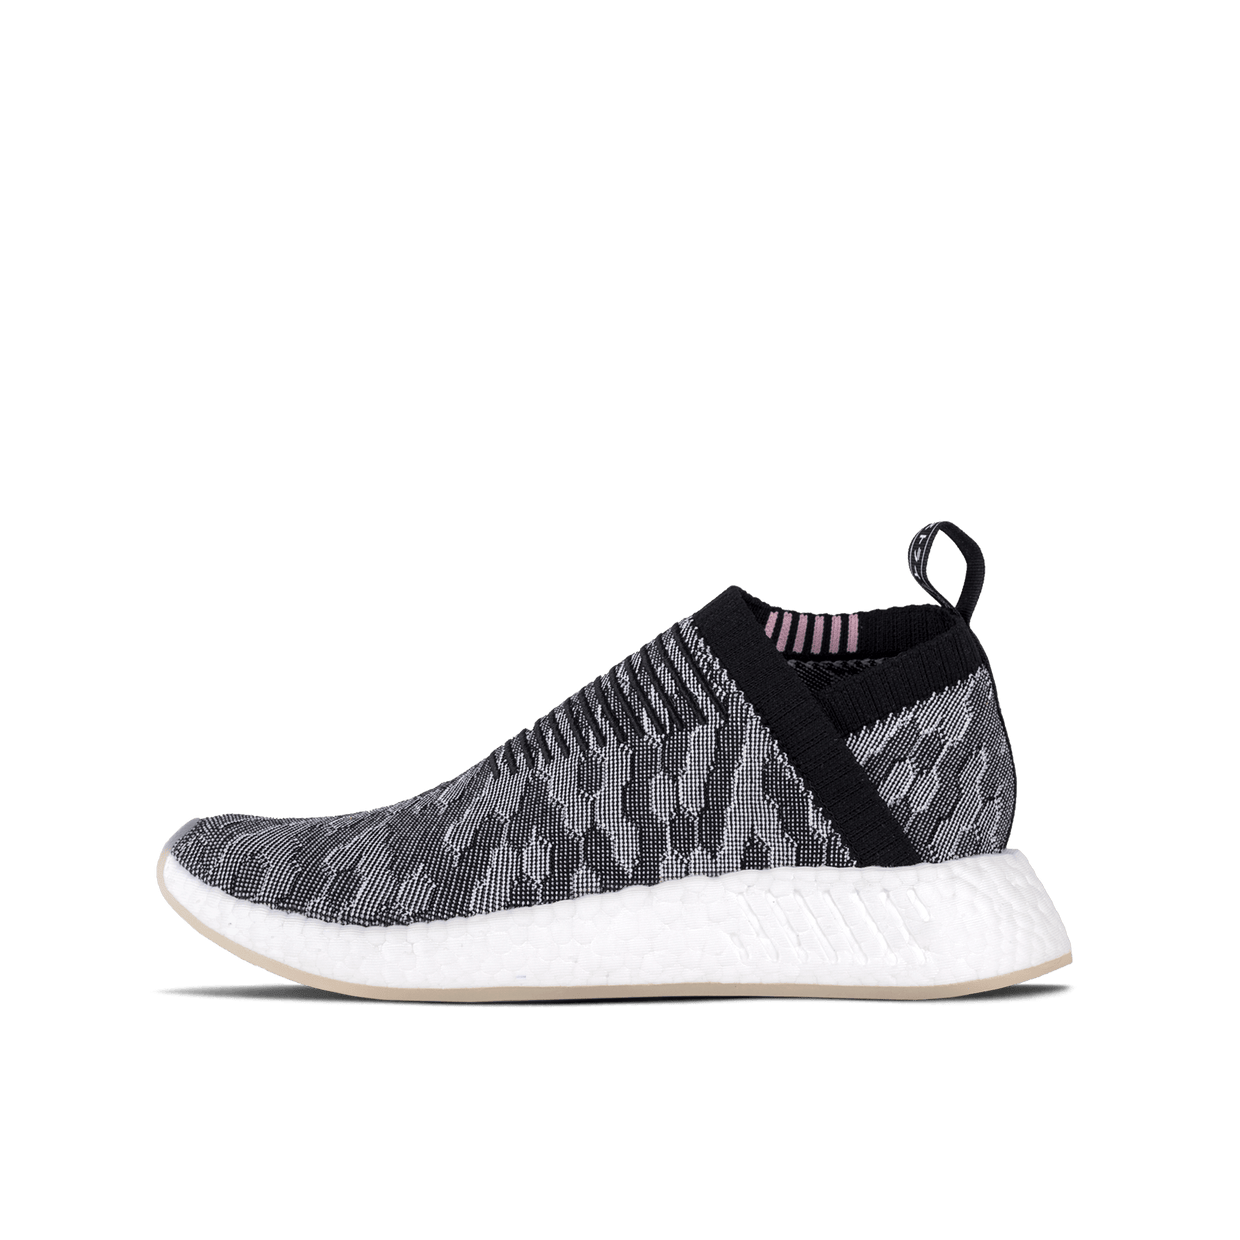 NMD_CS2 PK W - Black/White